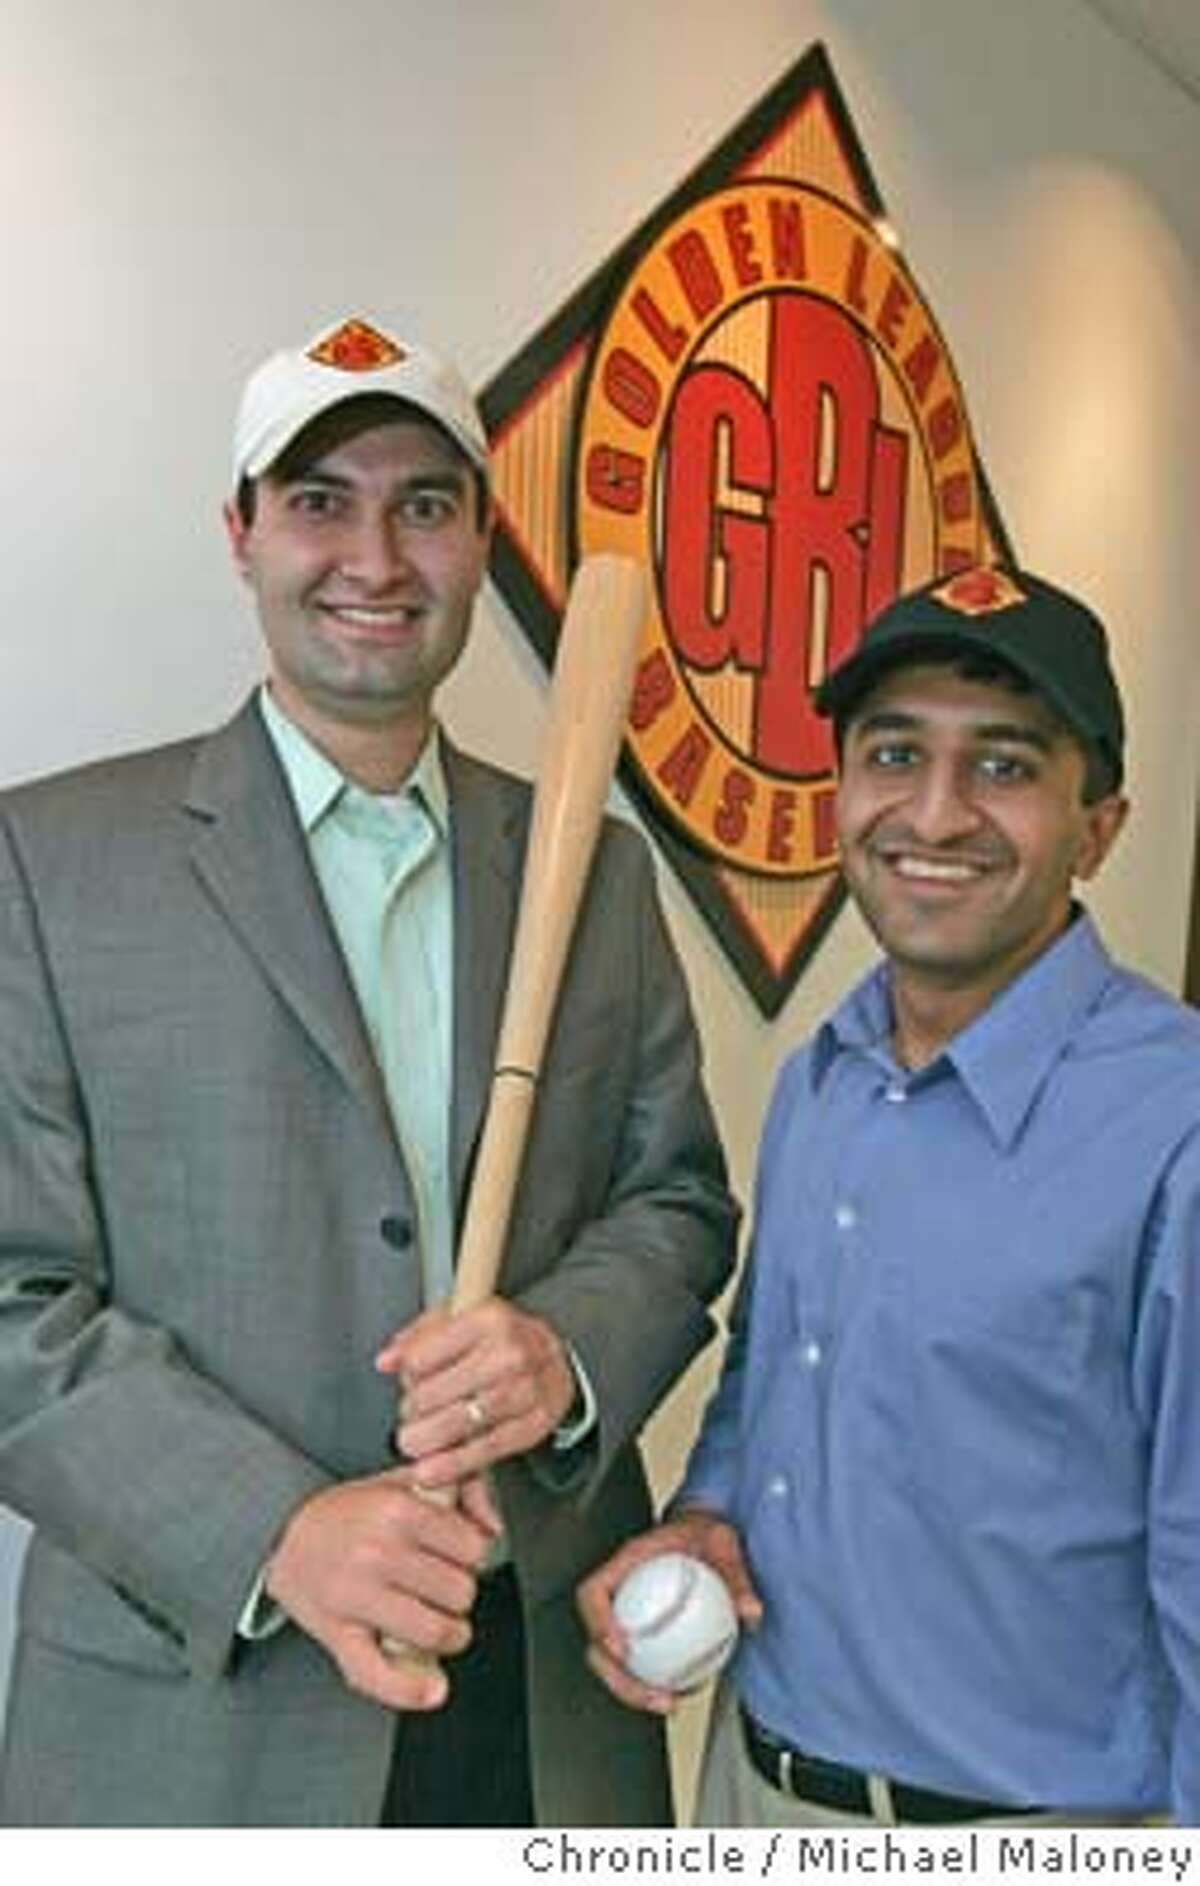 At left, David Kaval, Founder & CEO, right, Amit Patel, Founder and President of the new Pleasanton based Golden League. The Golden League is a new professional baseball league at the class-A level. The League will play a 90 game season in California and western Arizona starting in June 2005. Photo by Michael Maloney / San Francisco Chronicle